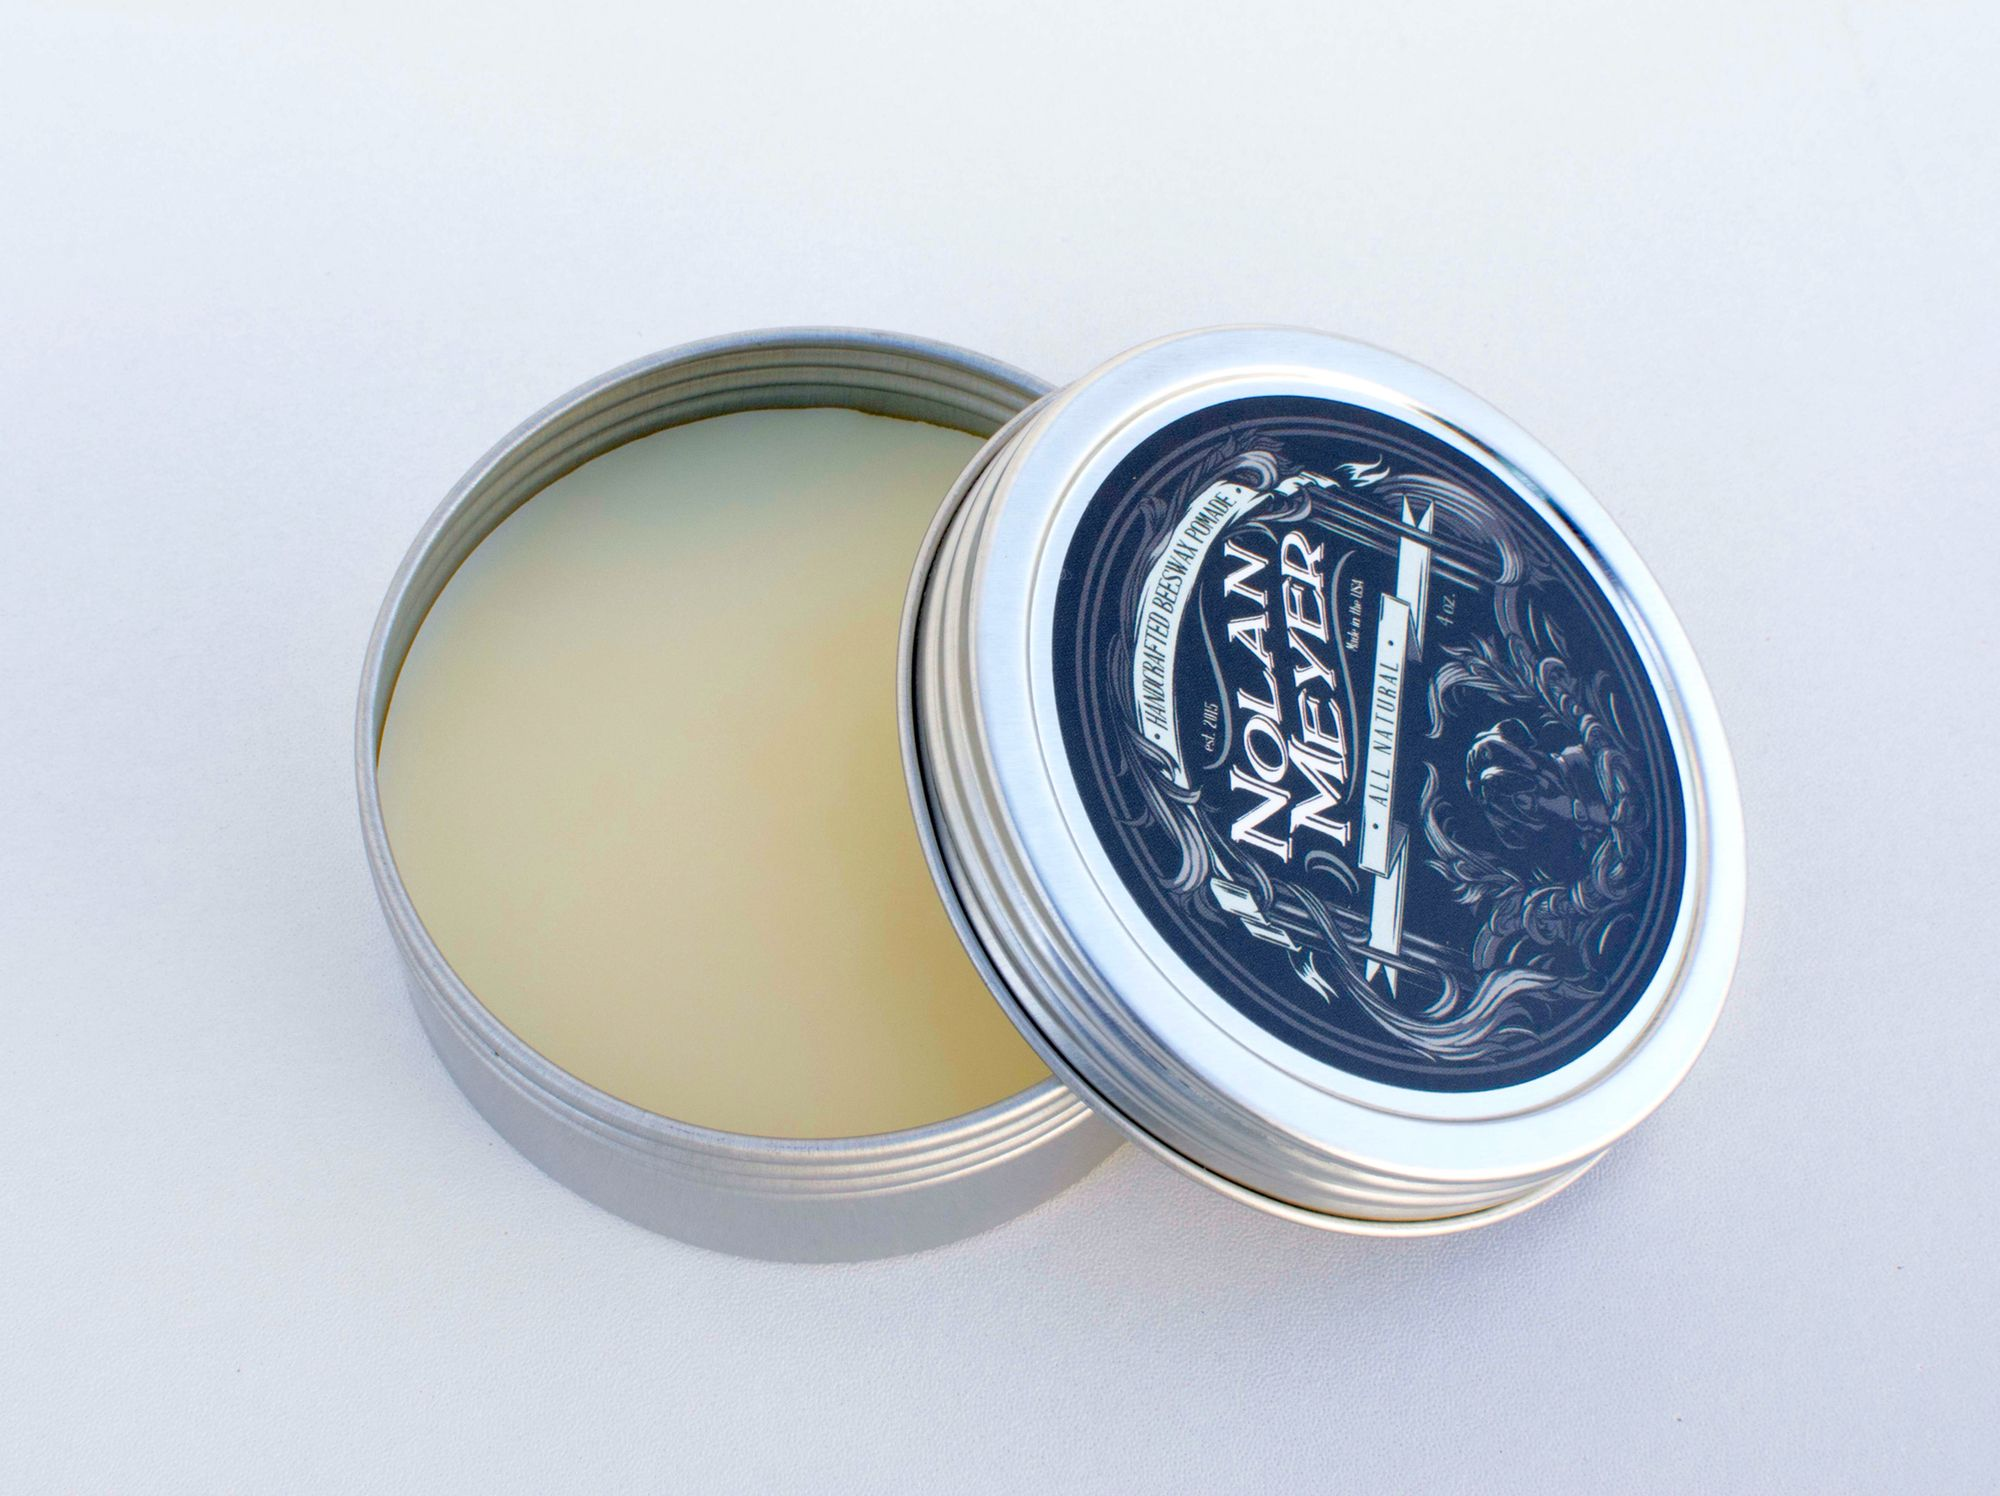 Handcrafted all natural beeswax pomade. $17 for 4oz www.nolanmeyer.com